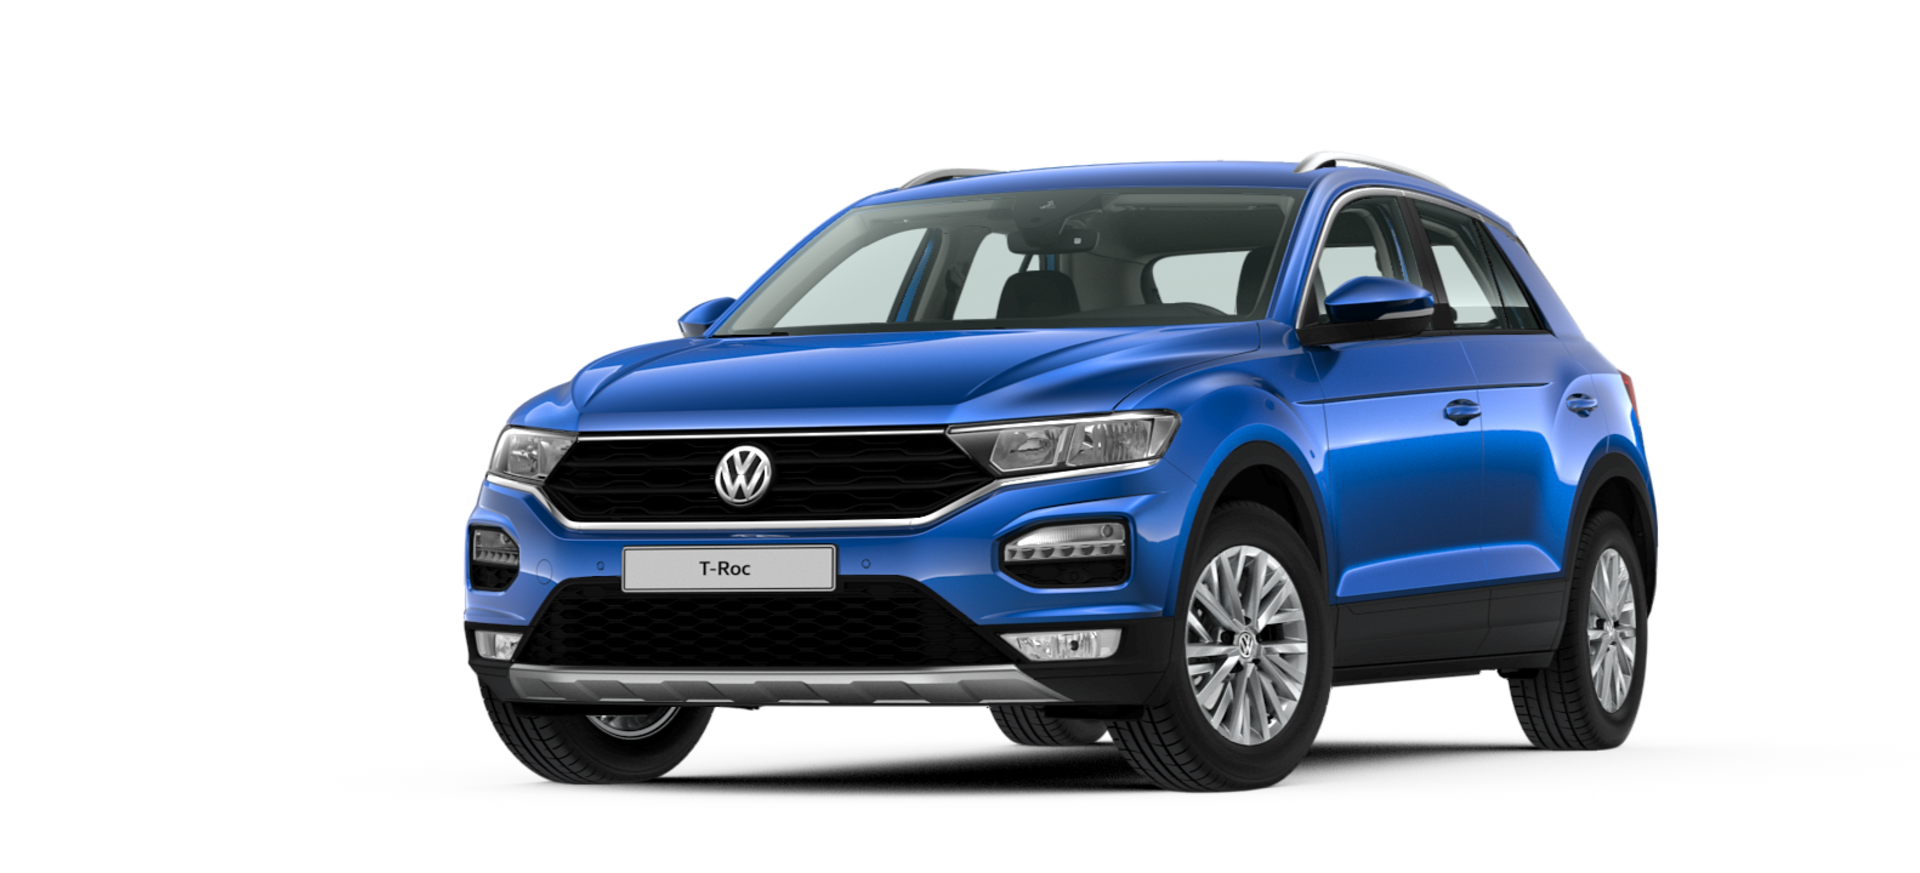 T-Roc Design 1.5 TSI DSG / 150 CP/110 kW / 1.5l / Direct Shift Gearbox / 4-usi : Volkswagen T-Roc